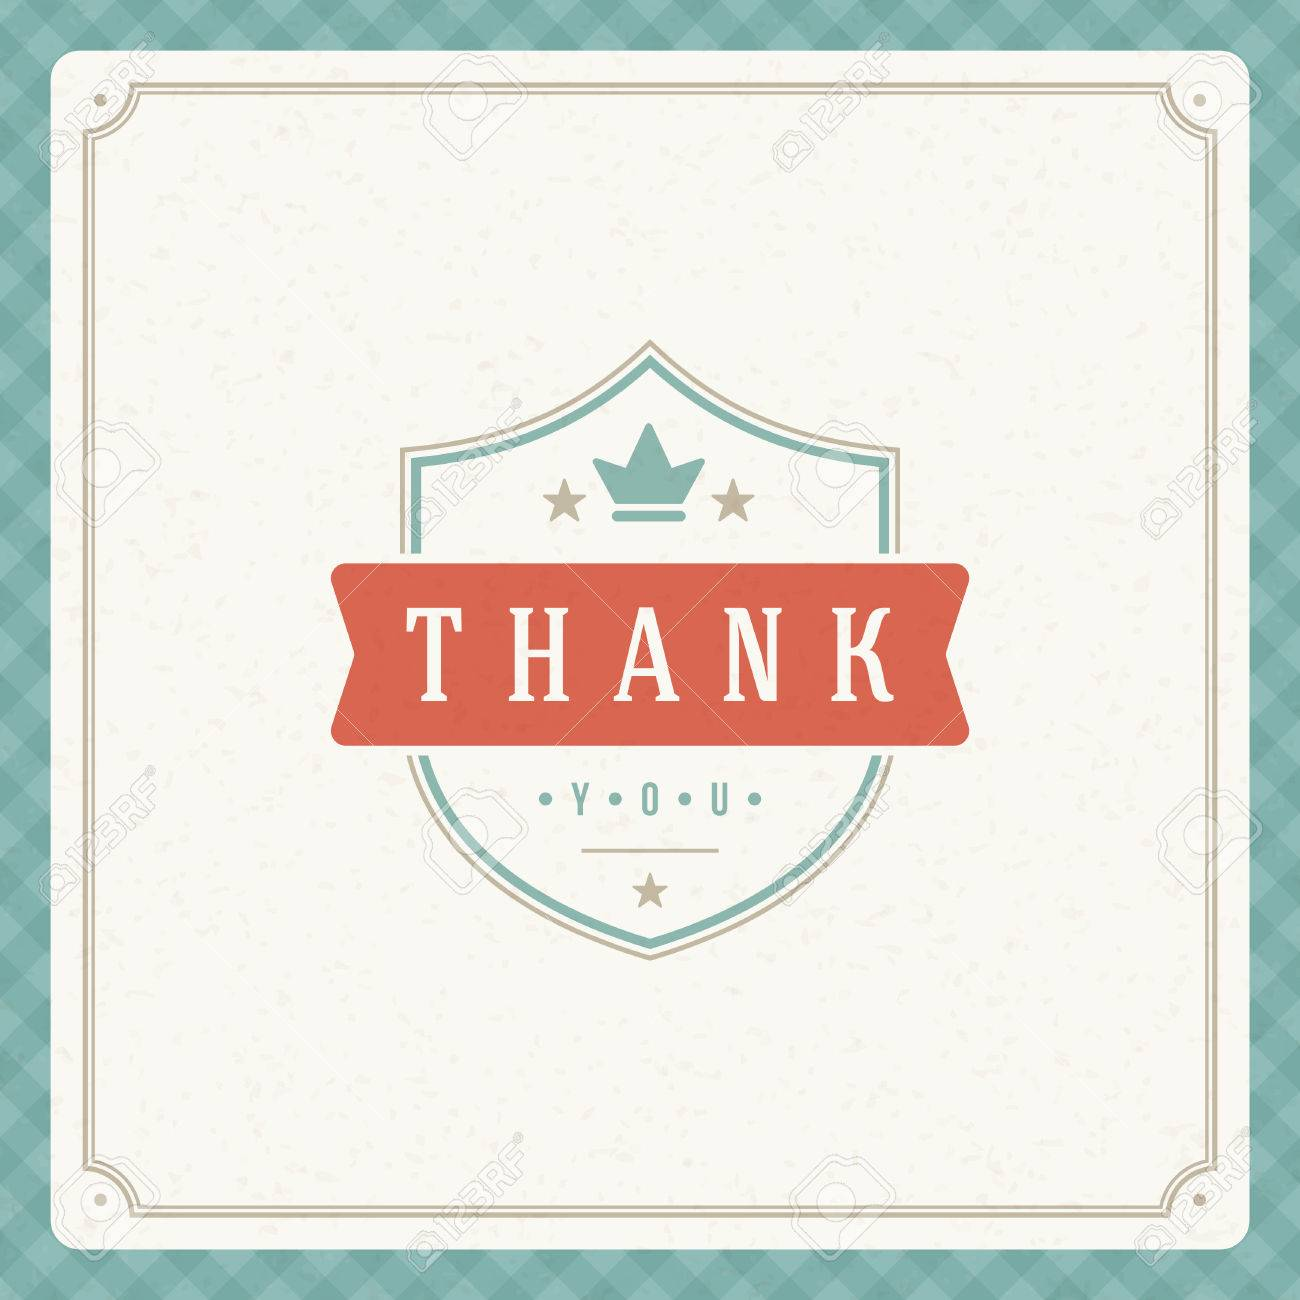 Thank you message text vintage greeting card design template thank you message text vintage greeting card design template retro vector background thank you kristyandbryce Choice Image